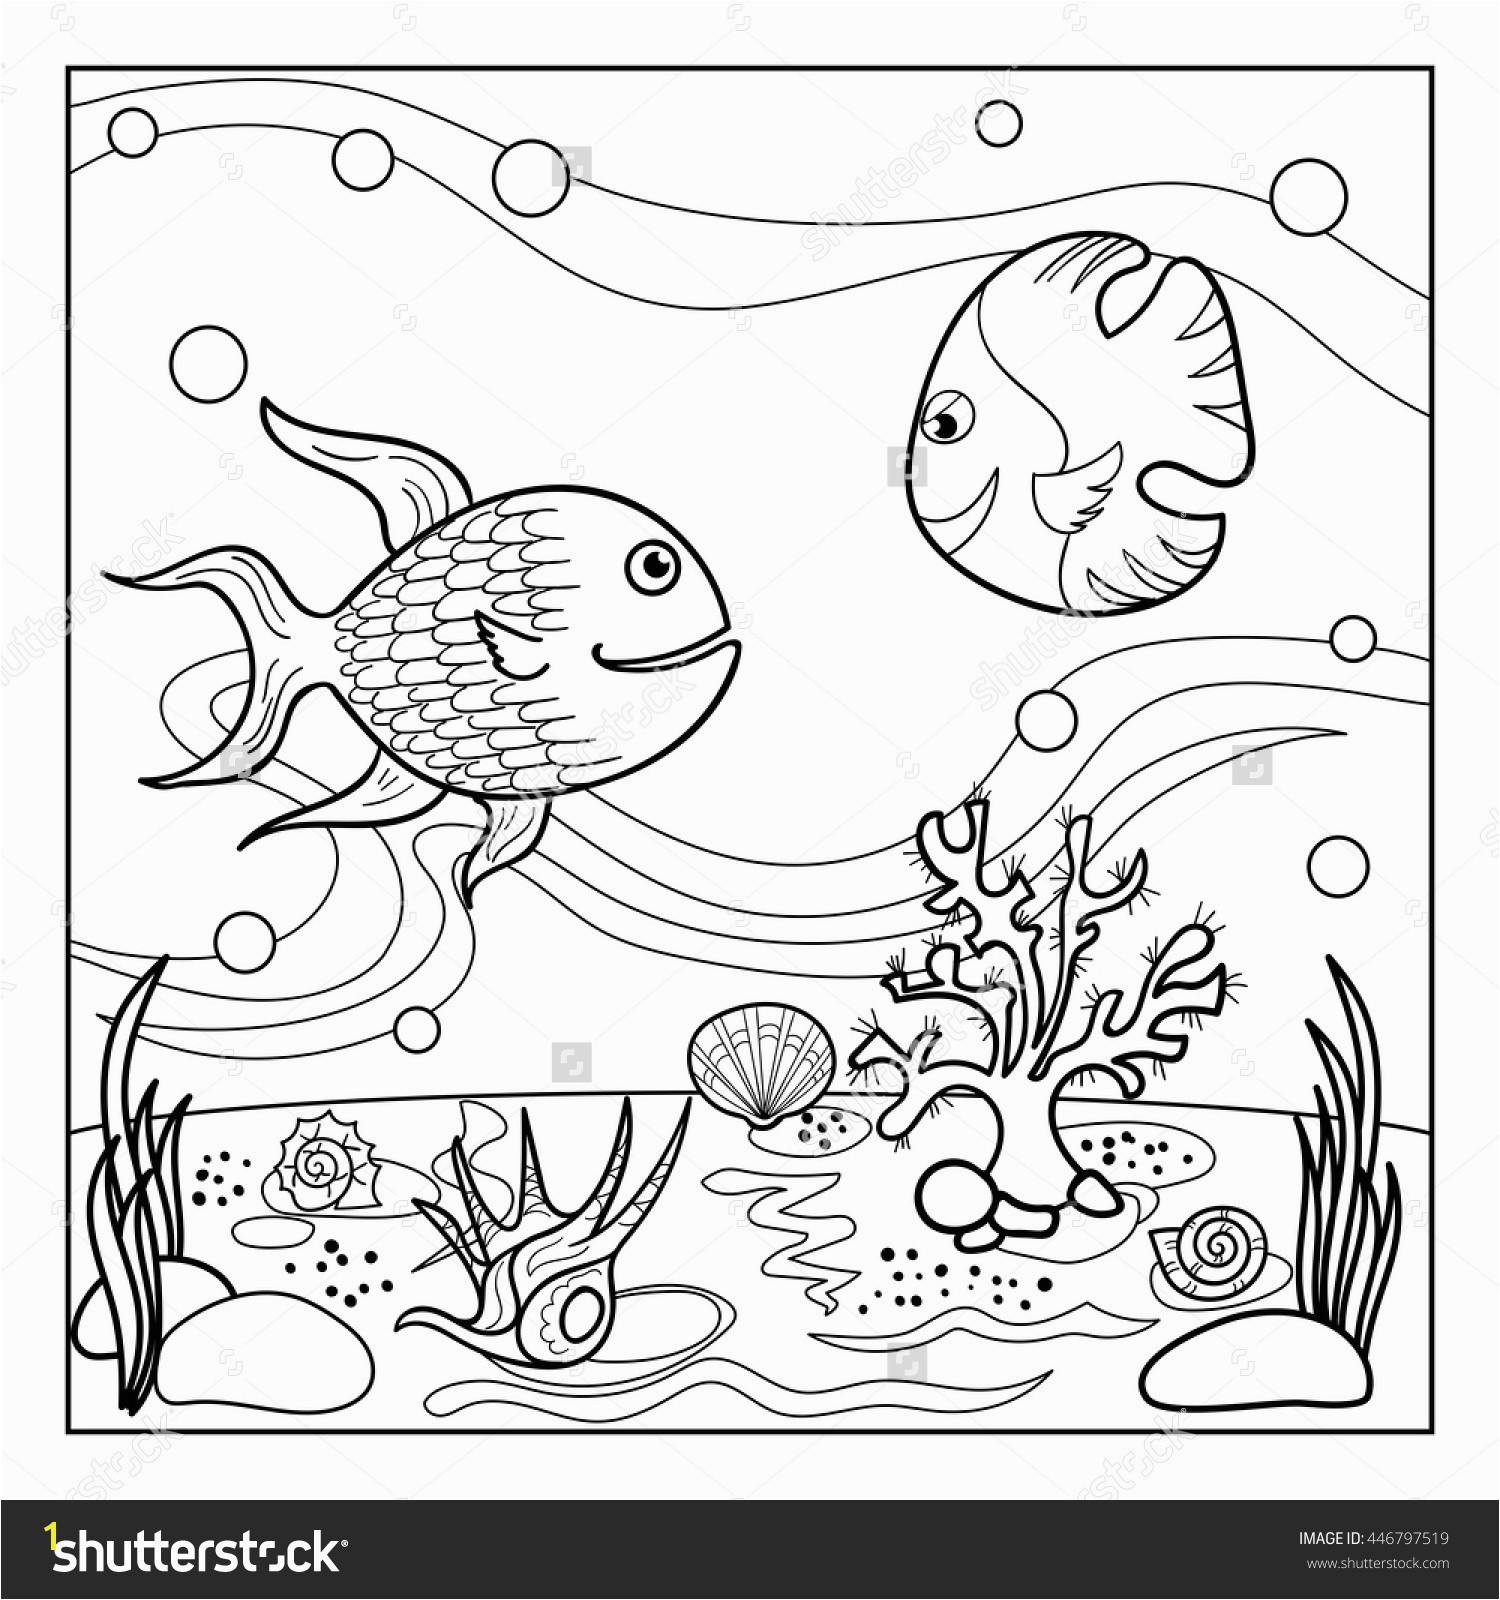 Link Coloring Pages New Best Ocean Coloring Pages Best Printable Cds 0d Coloring Page Link